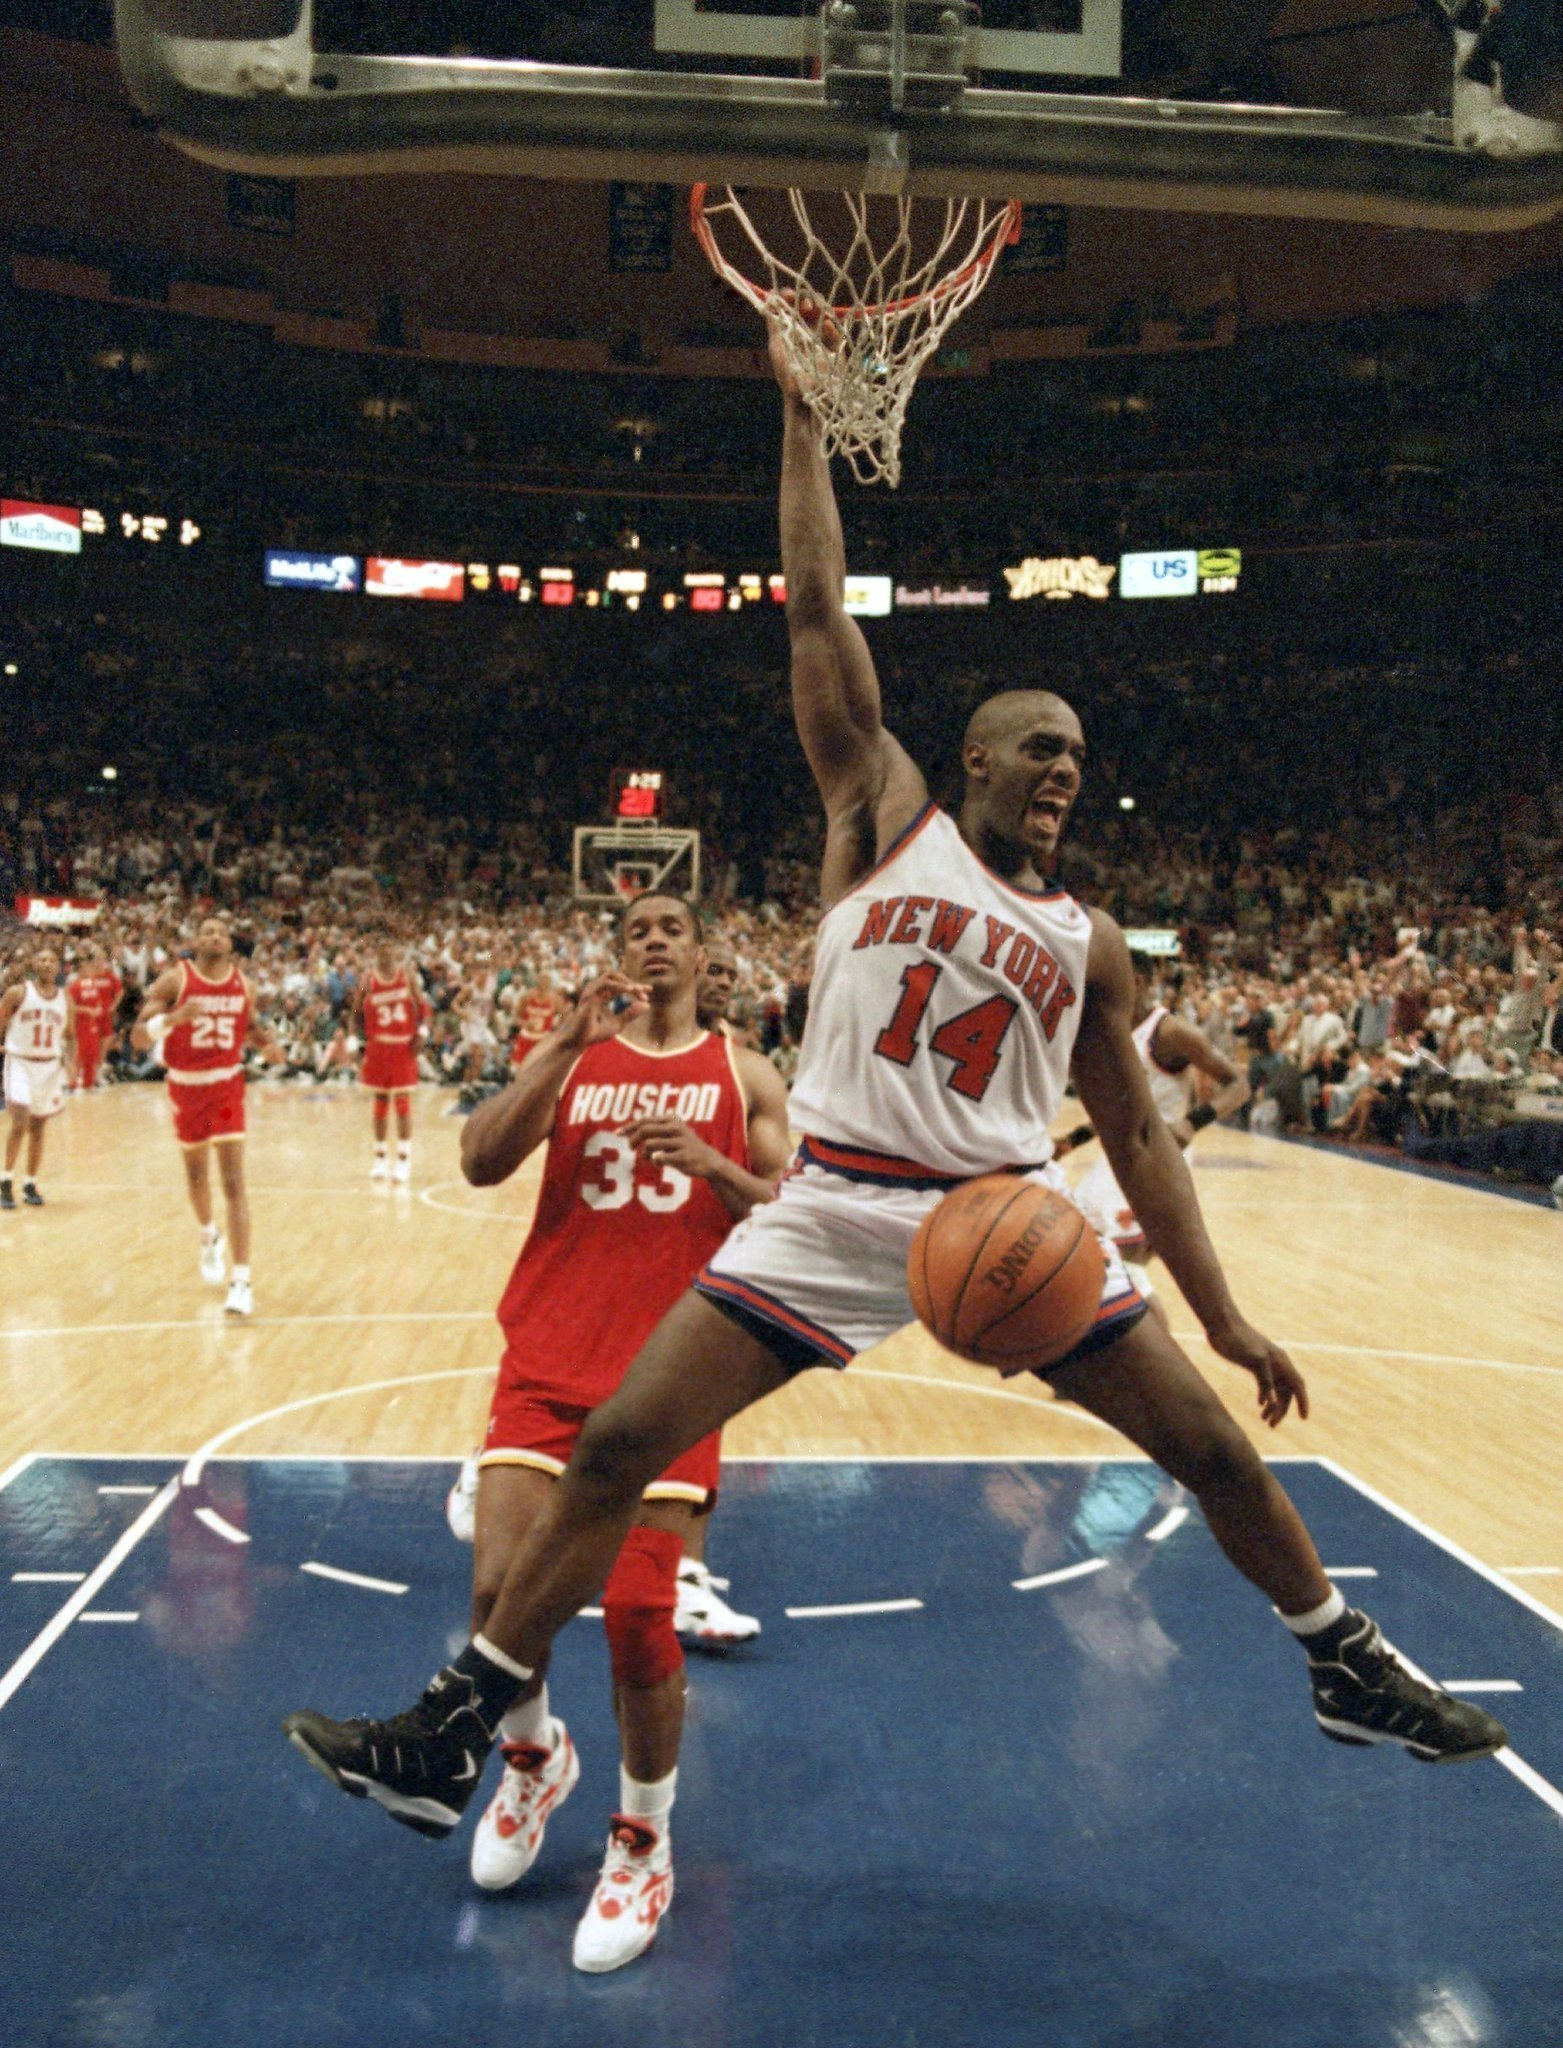 Knicks say former player Anthony Mason has died - The San Diego Union-Tribune